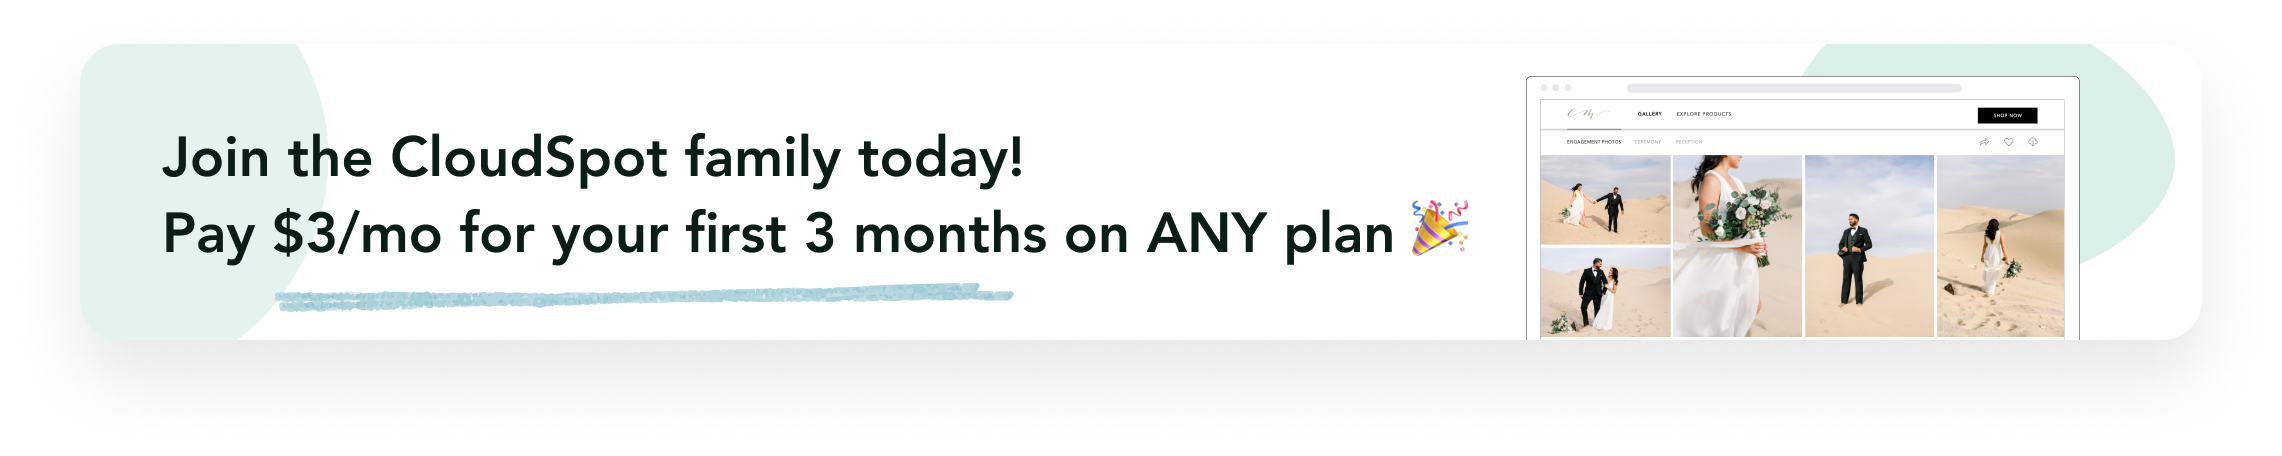 Pay $3/mo for first 3 month on any plan